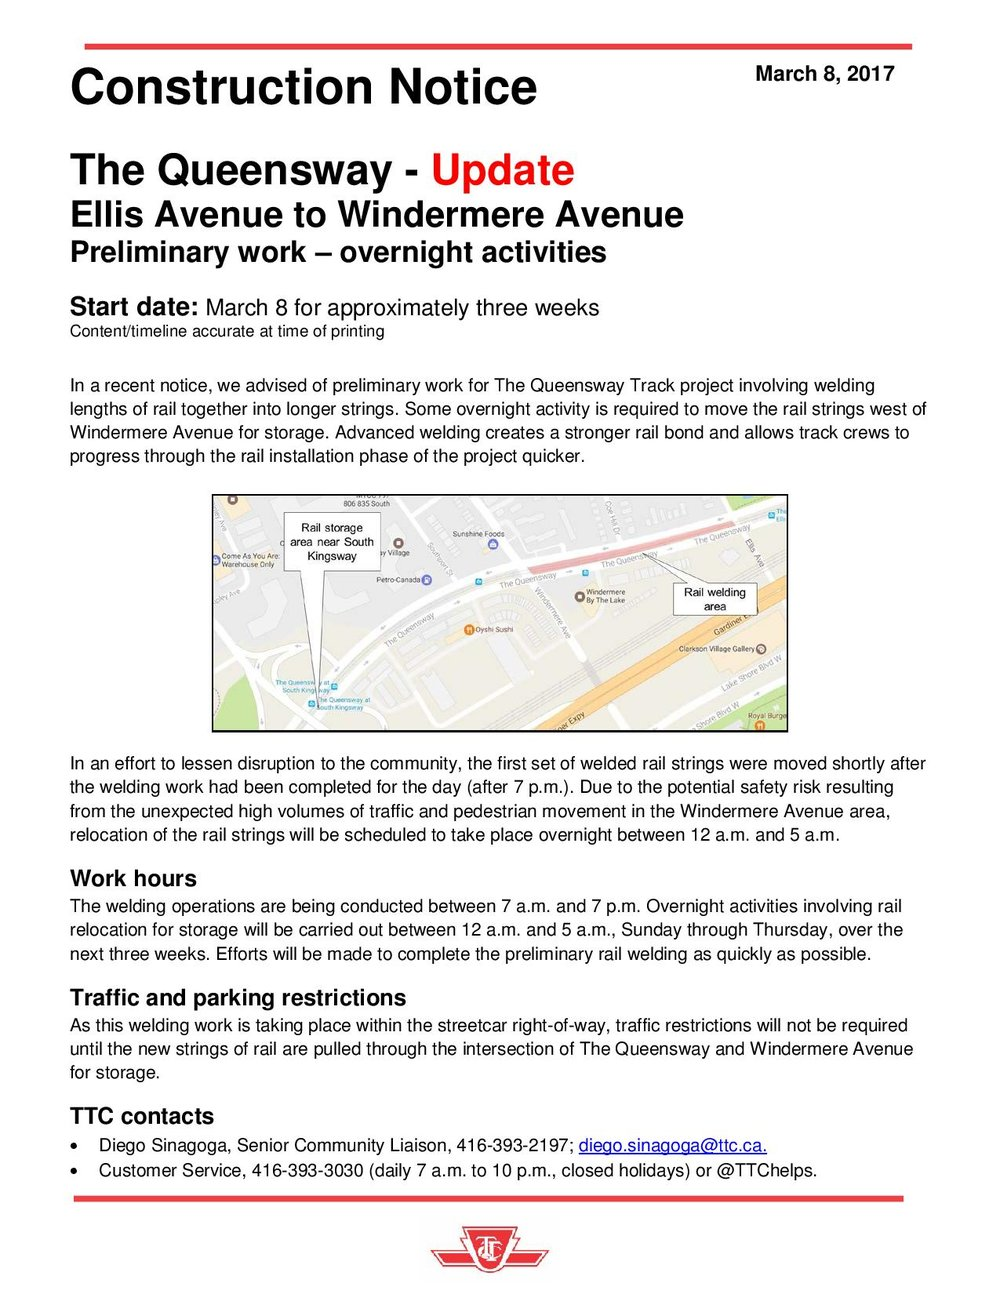 TTC Notice - The Queensway Track Project - welding and rail relocation update-page-001.jpg